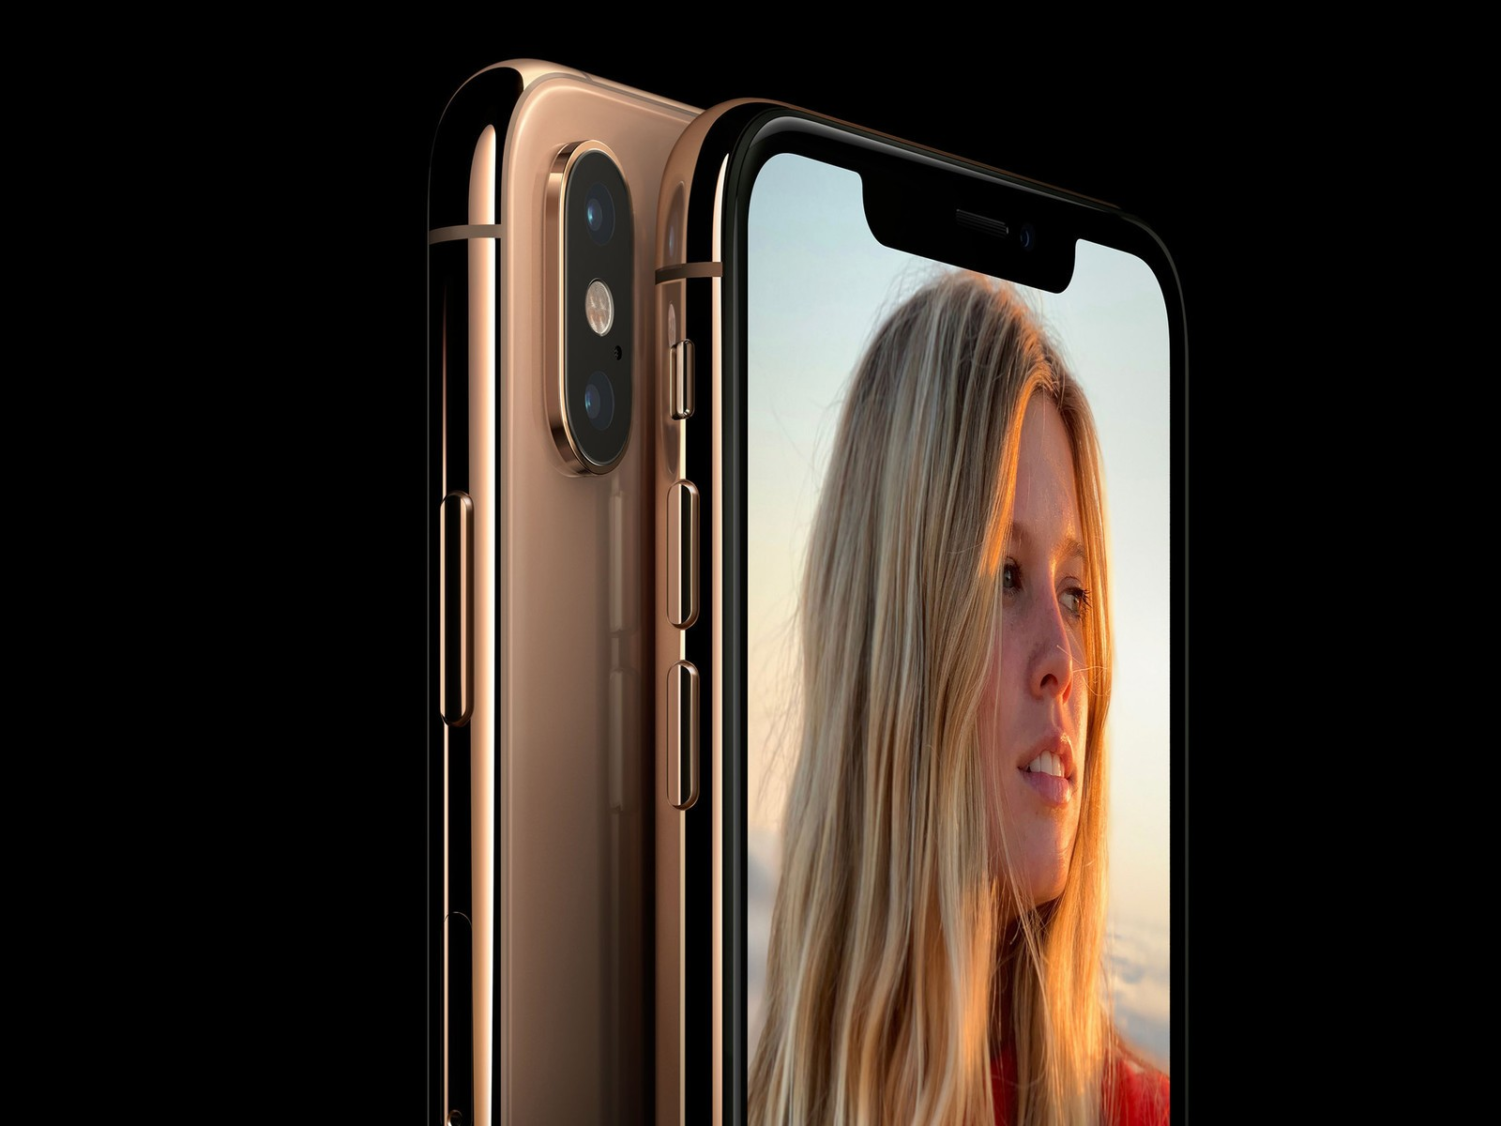 The new gold iPhone Xs sports stainless steel borders and a glass back.